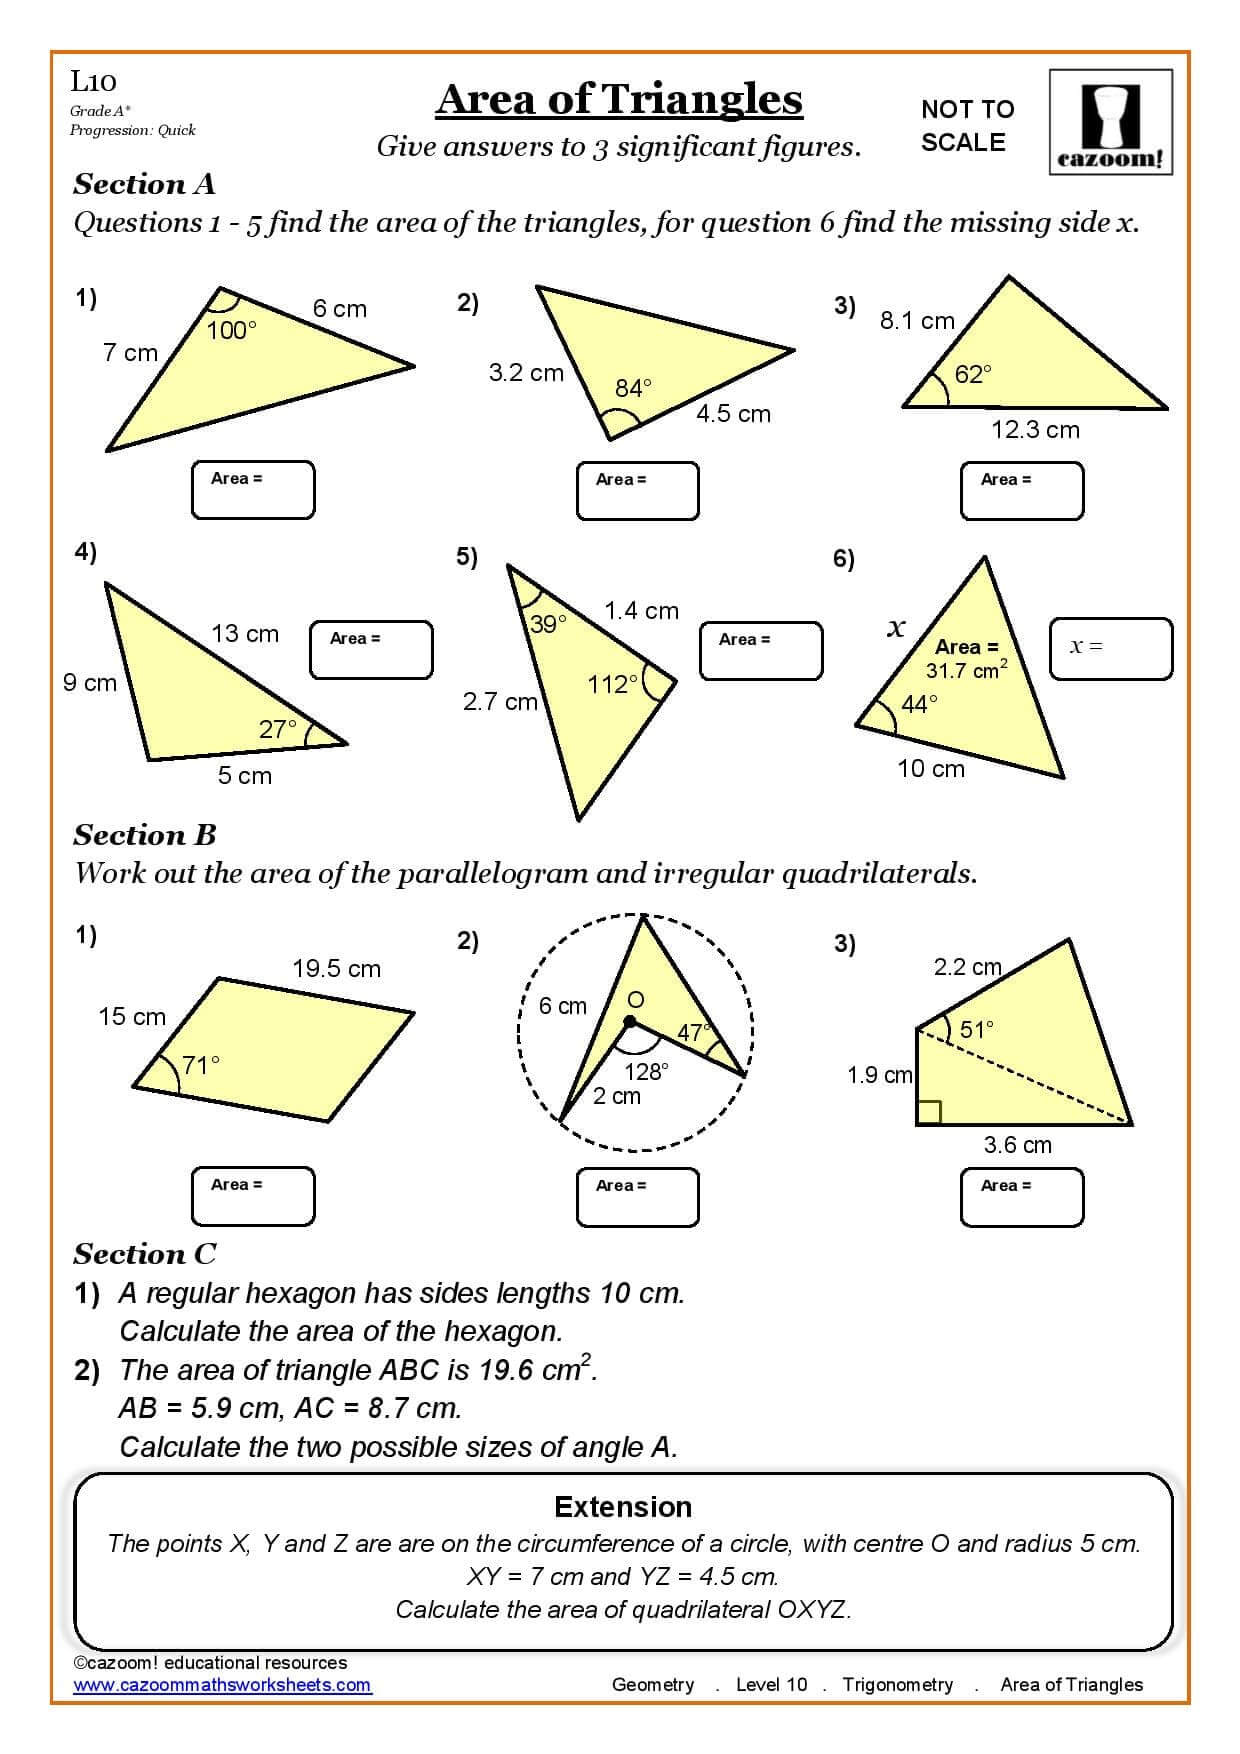 Trig Ratios Worksheet Key